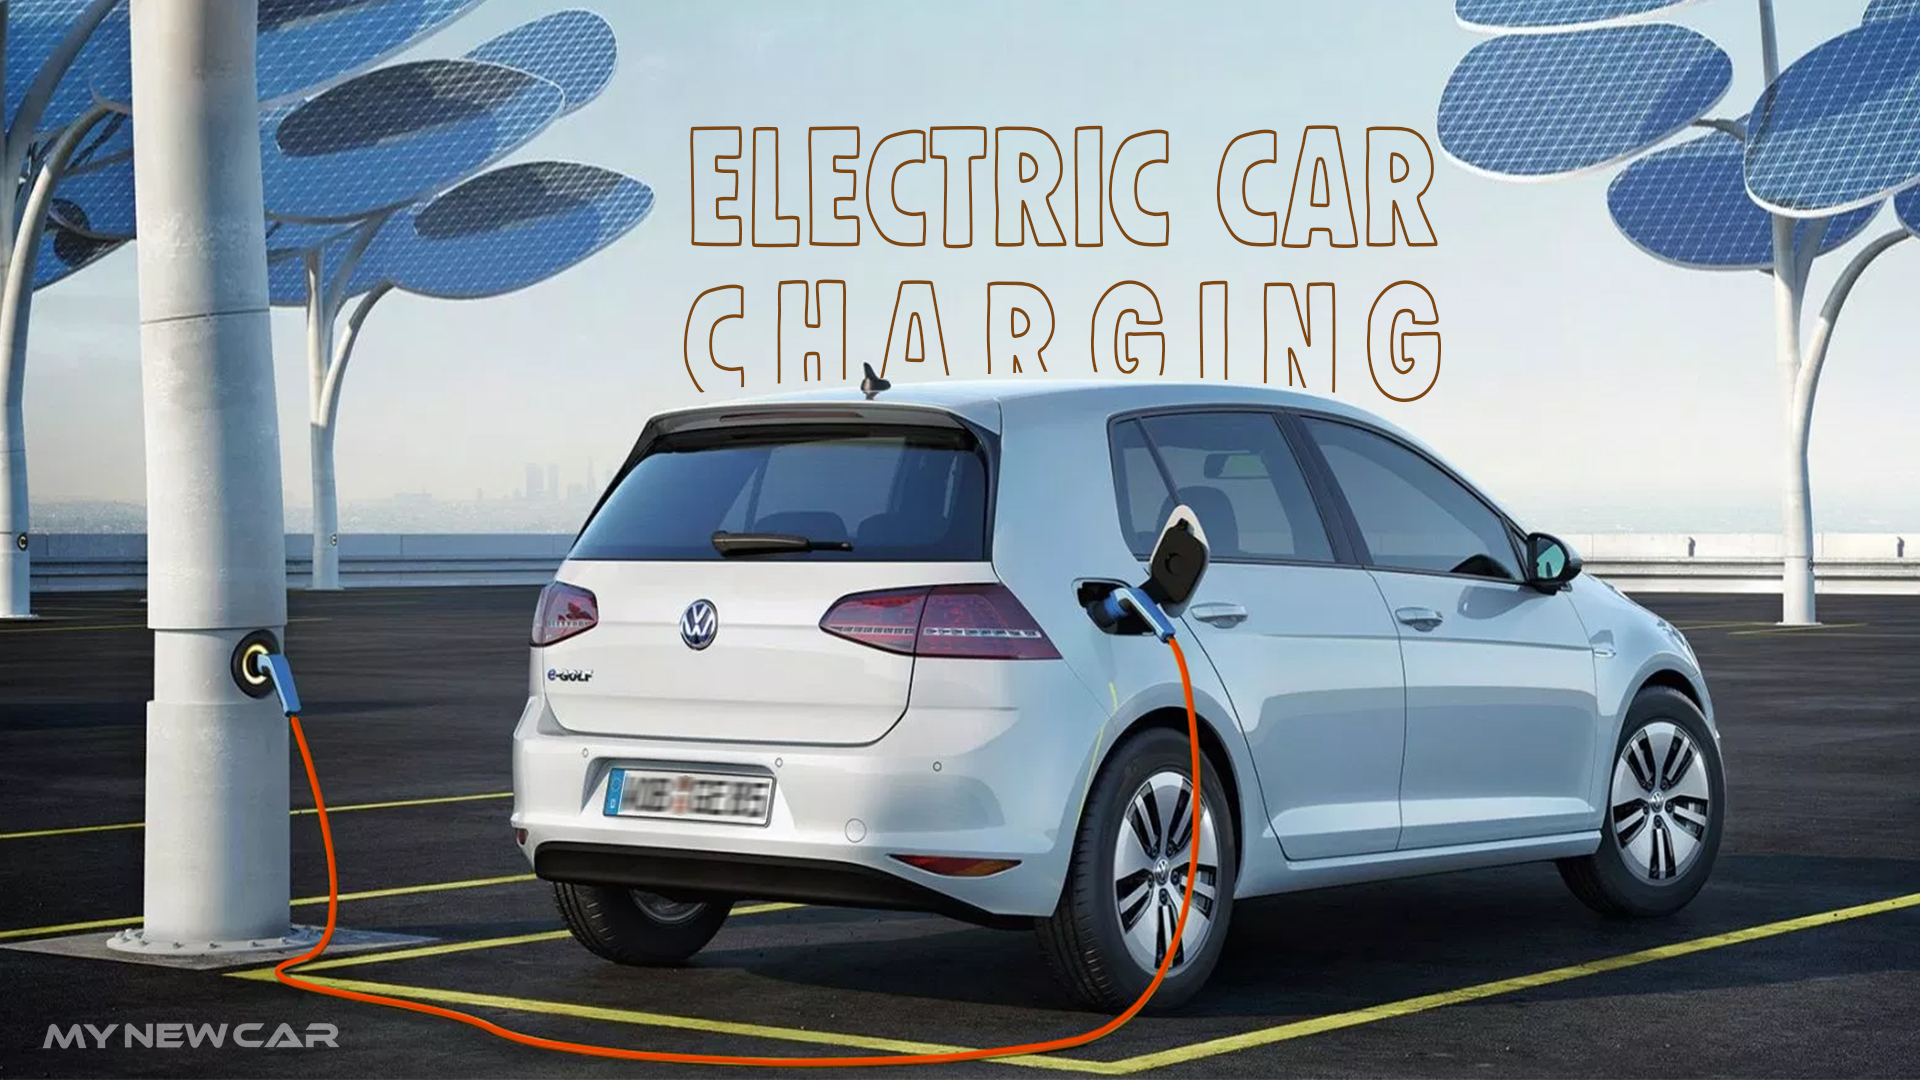 How To Charge Your Electric Car: A Guide To Electric Car Charging